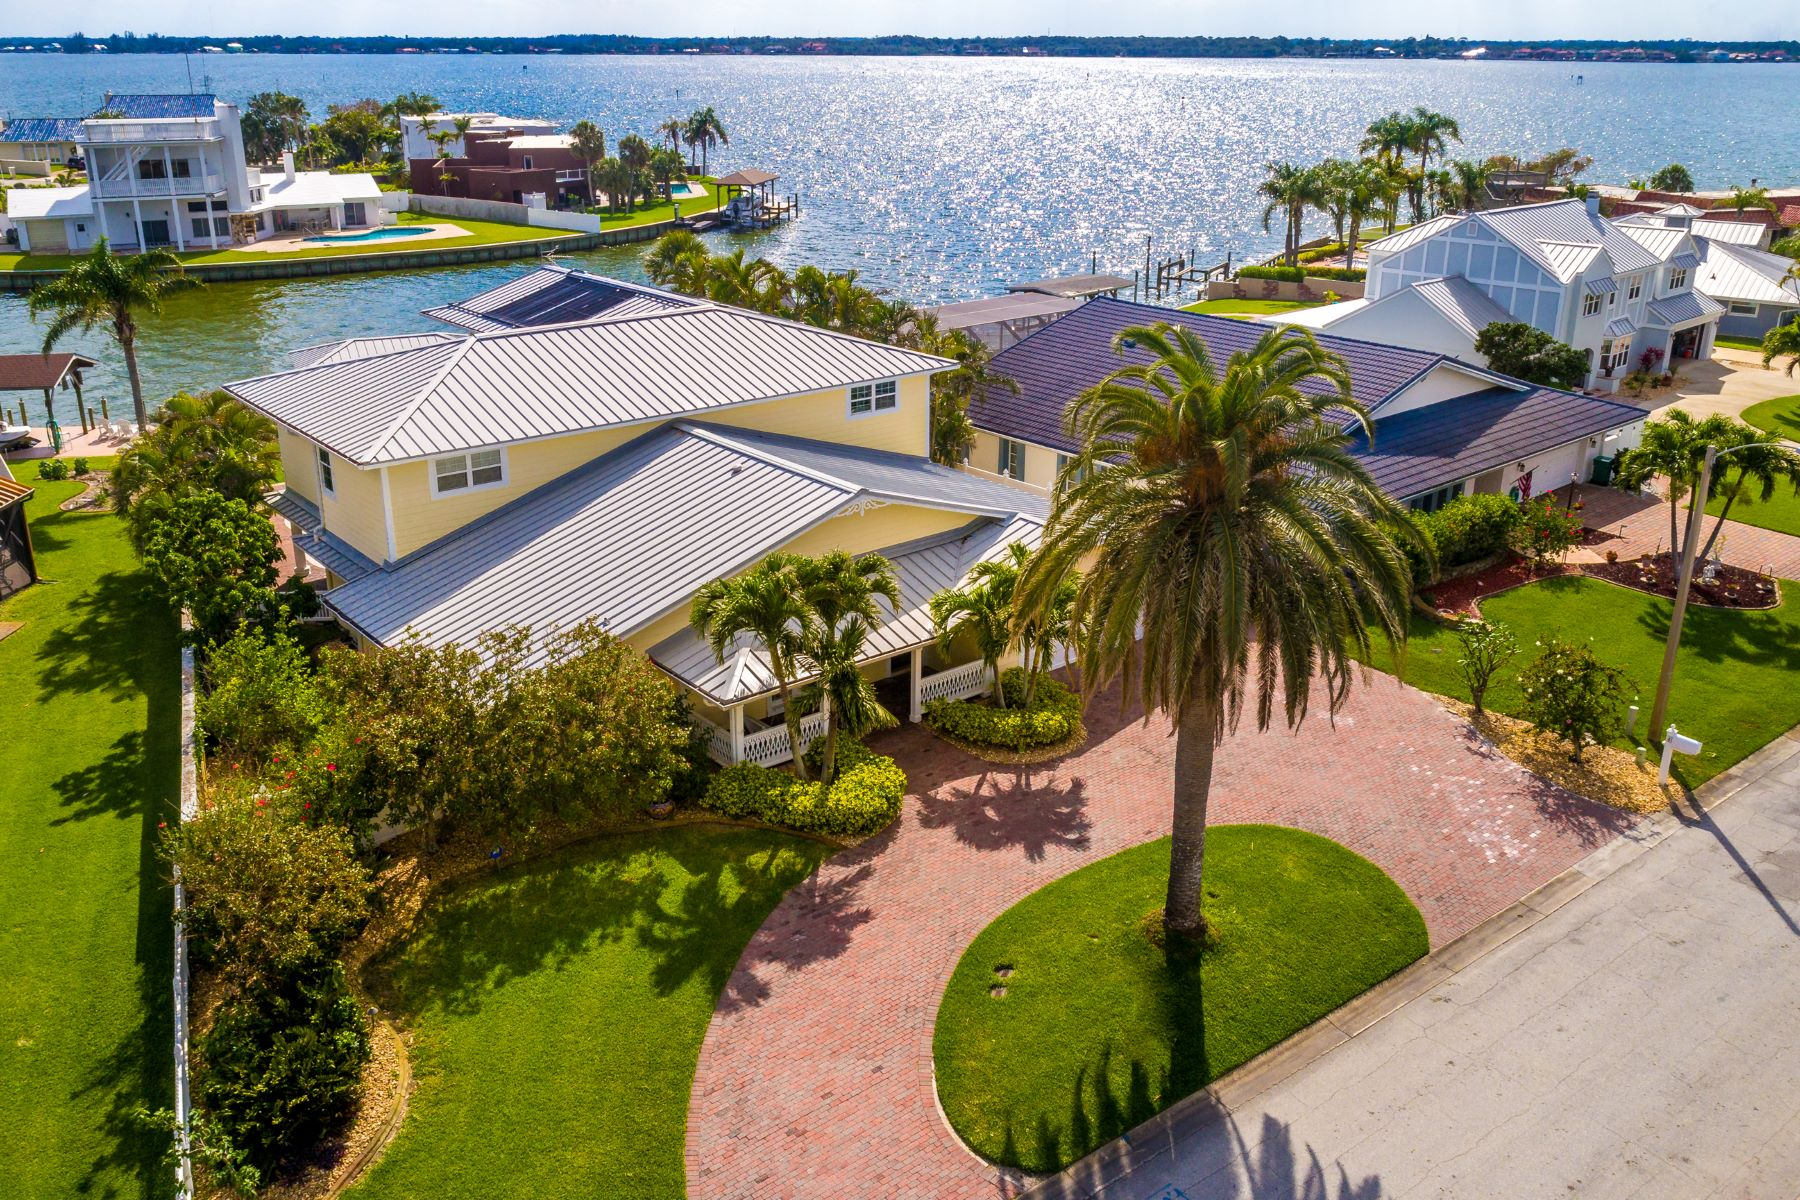 Spectacular Waterfront Home 4 Willow Green Dr. Cocoa Beach, Florida 32931 Amerika Birleşik Devletleri